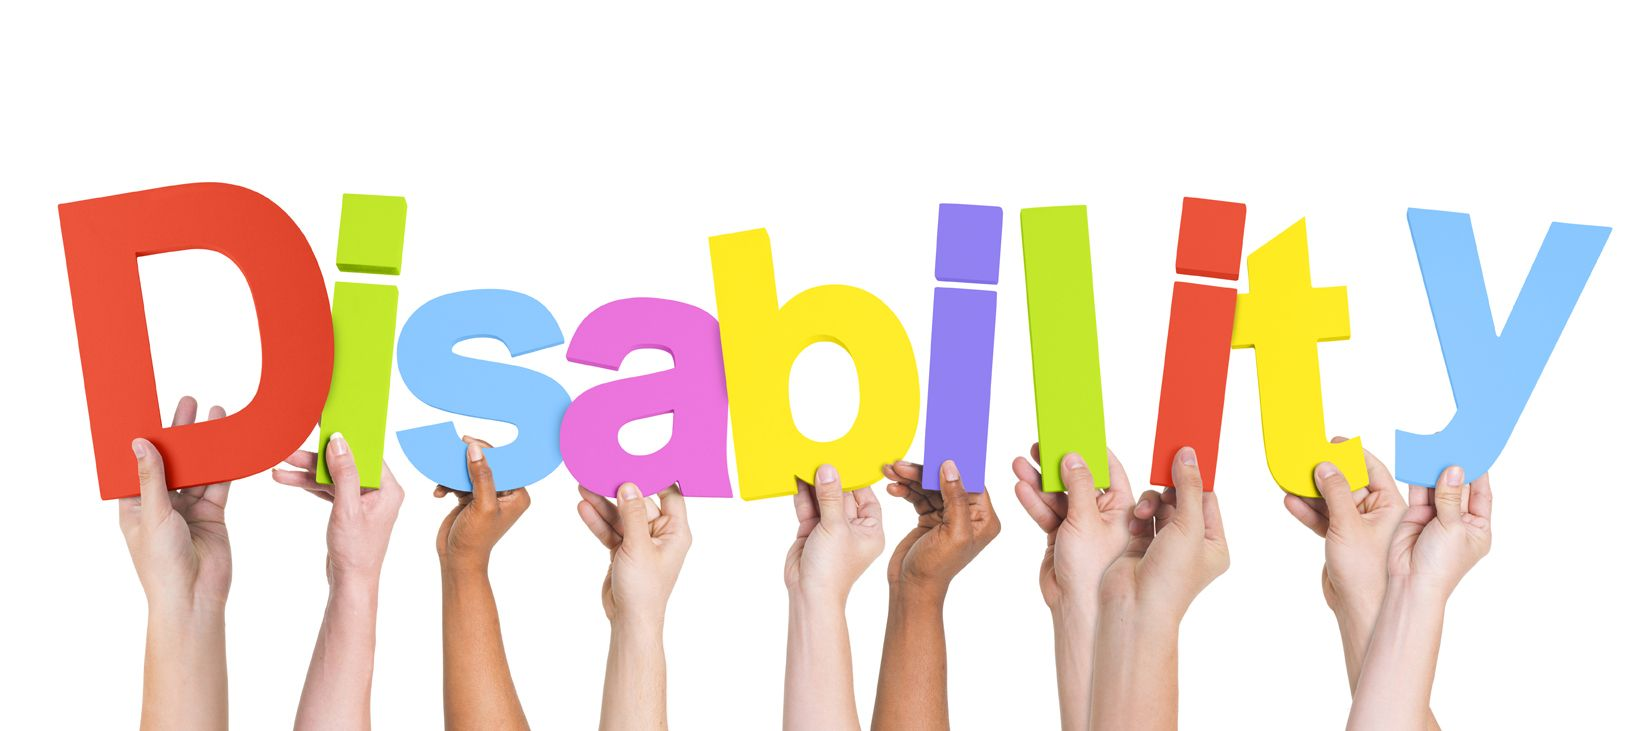 Everyone has a disability workplace wellness volunteer